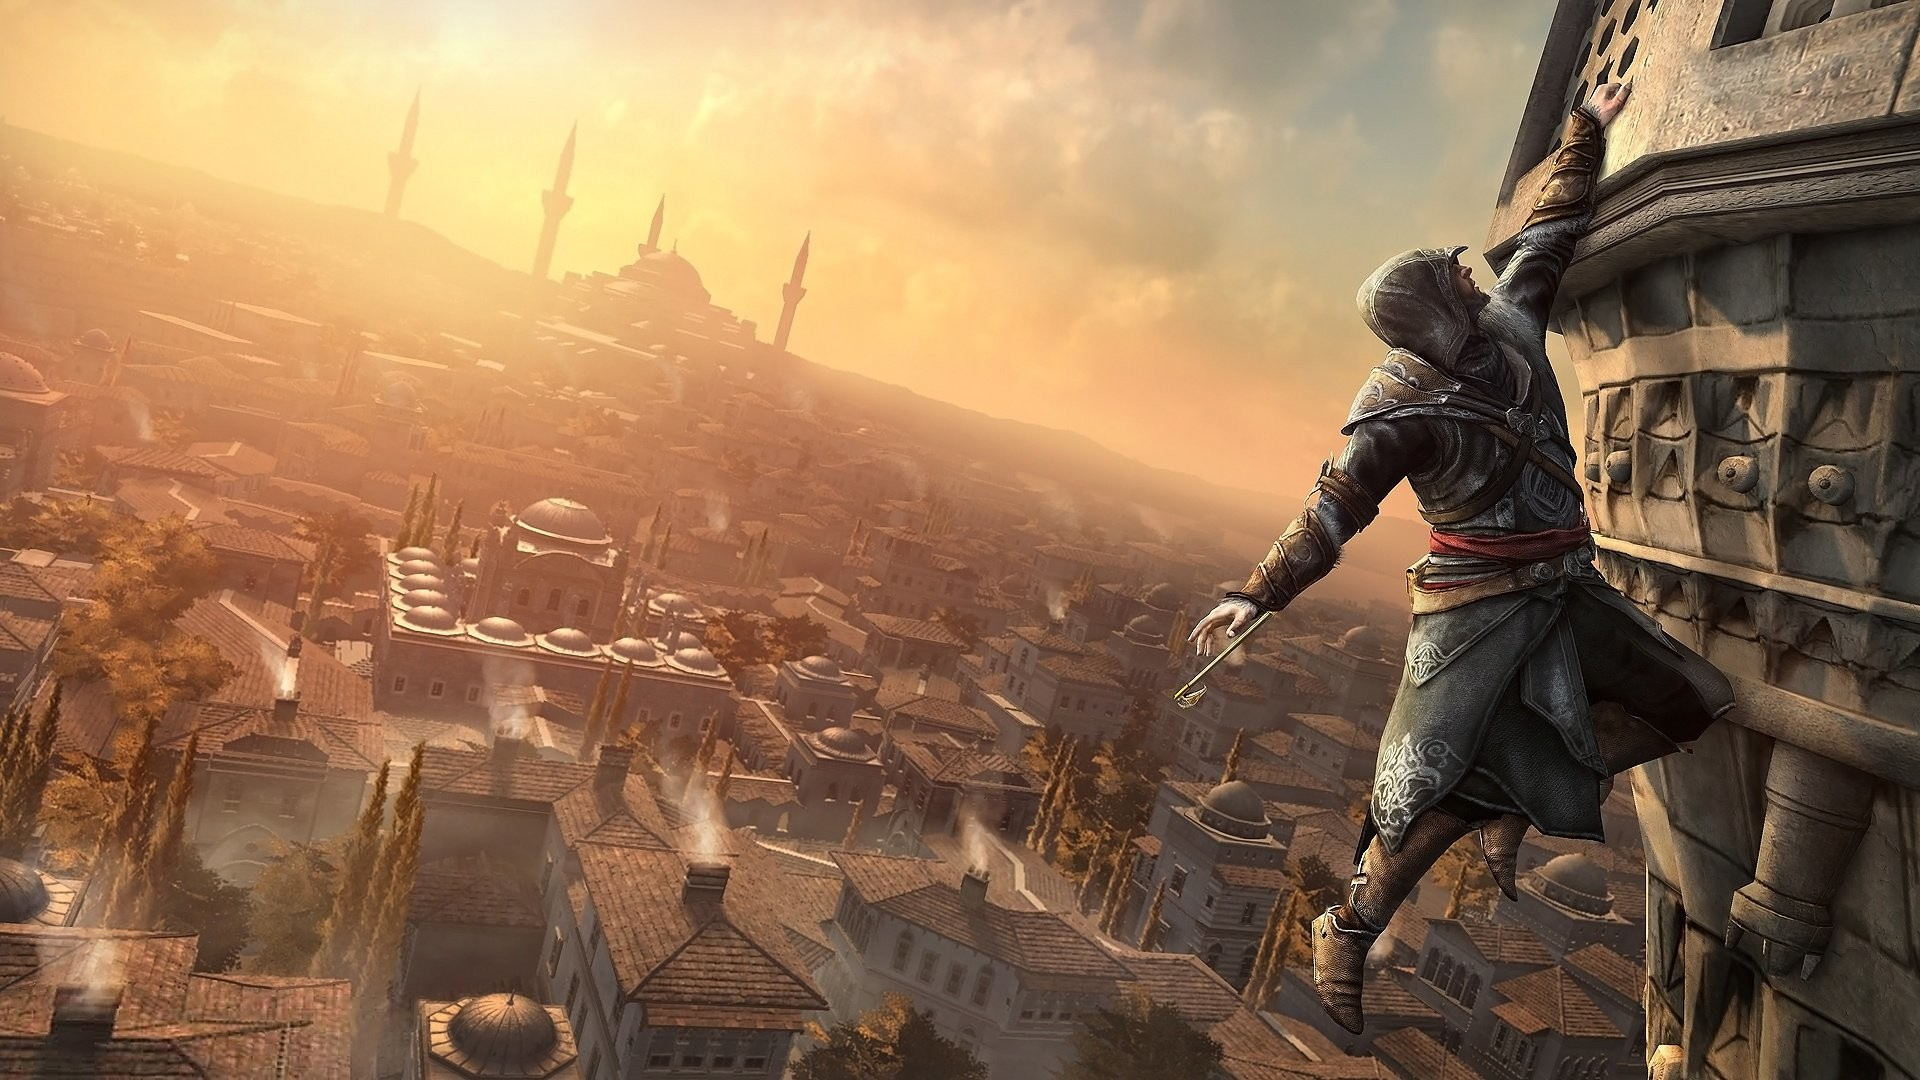 1920x1080 Wallpaper zu Assassin's Creed: Revelations herunterladen